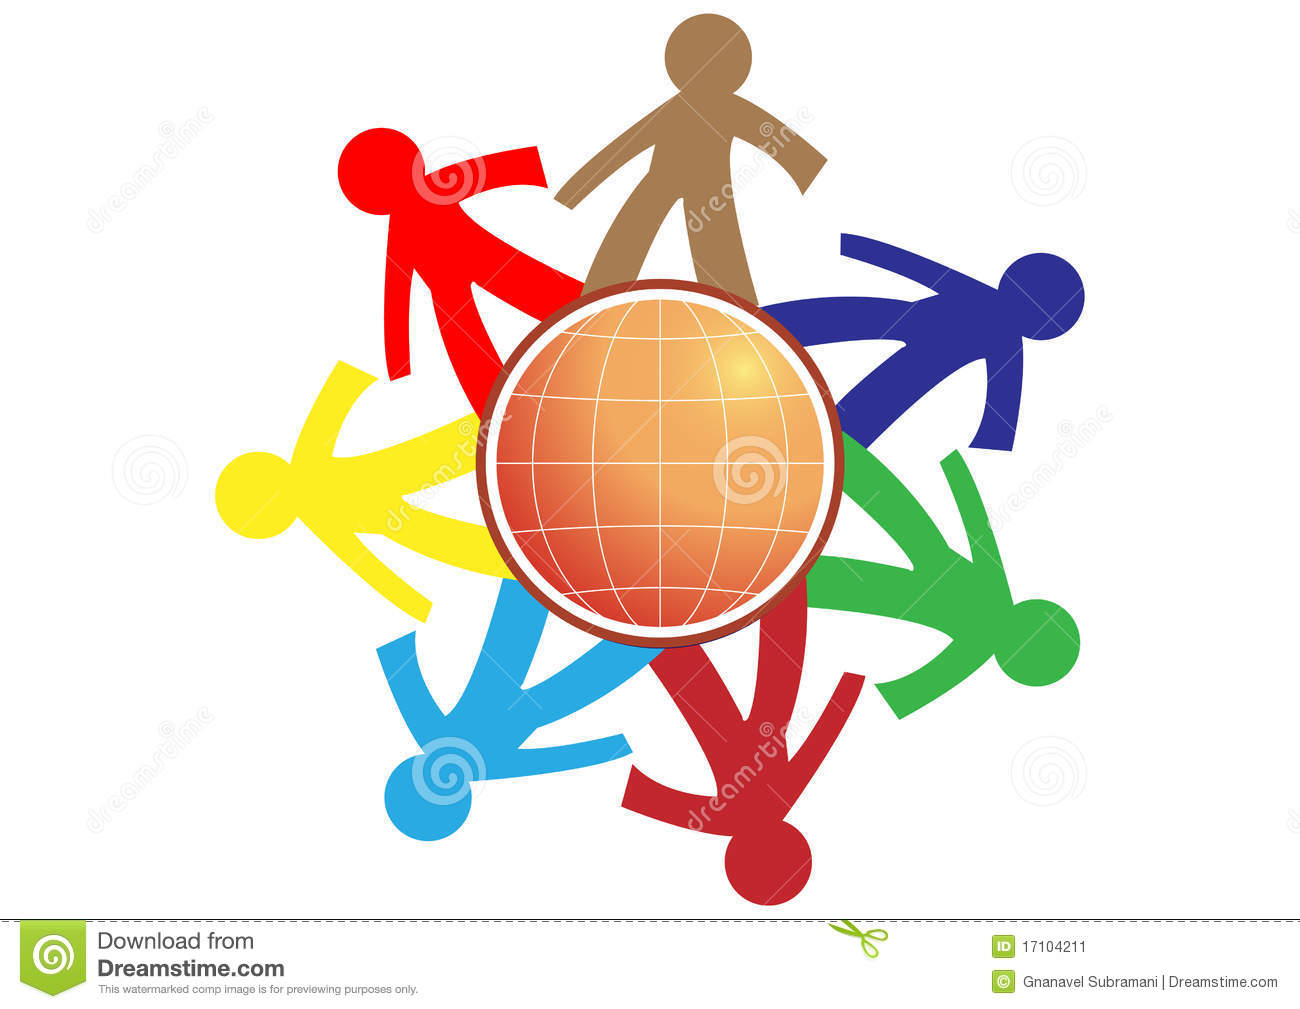 People connection clipart border svg People Connect Stock Image - Image: 17104211 svg